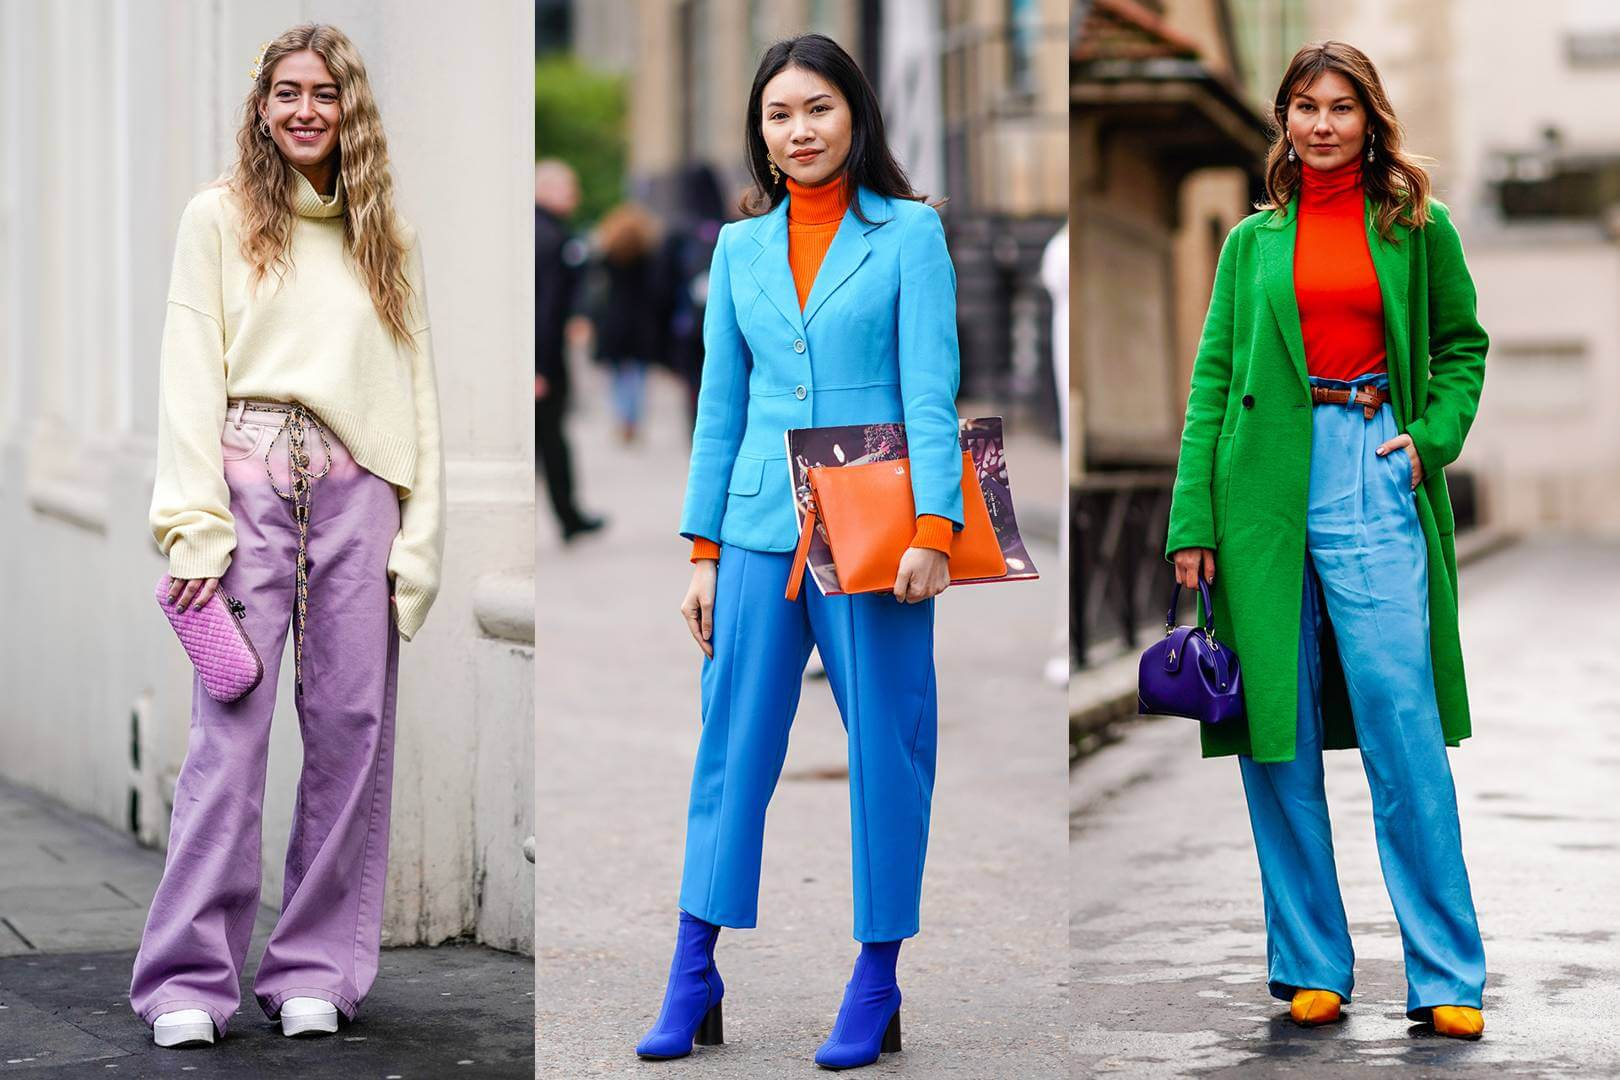 Wear Complementary Colors